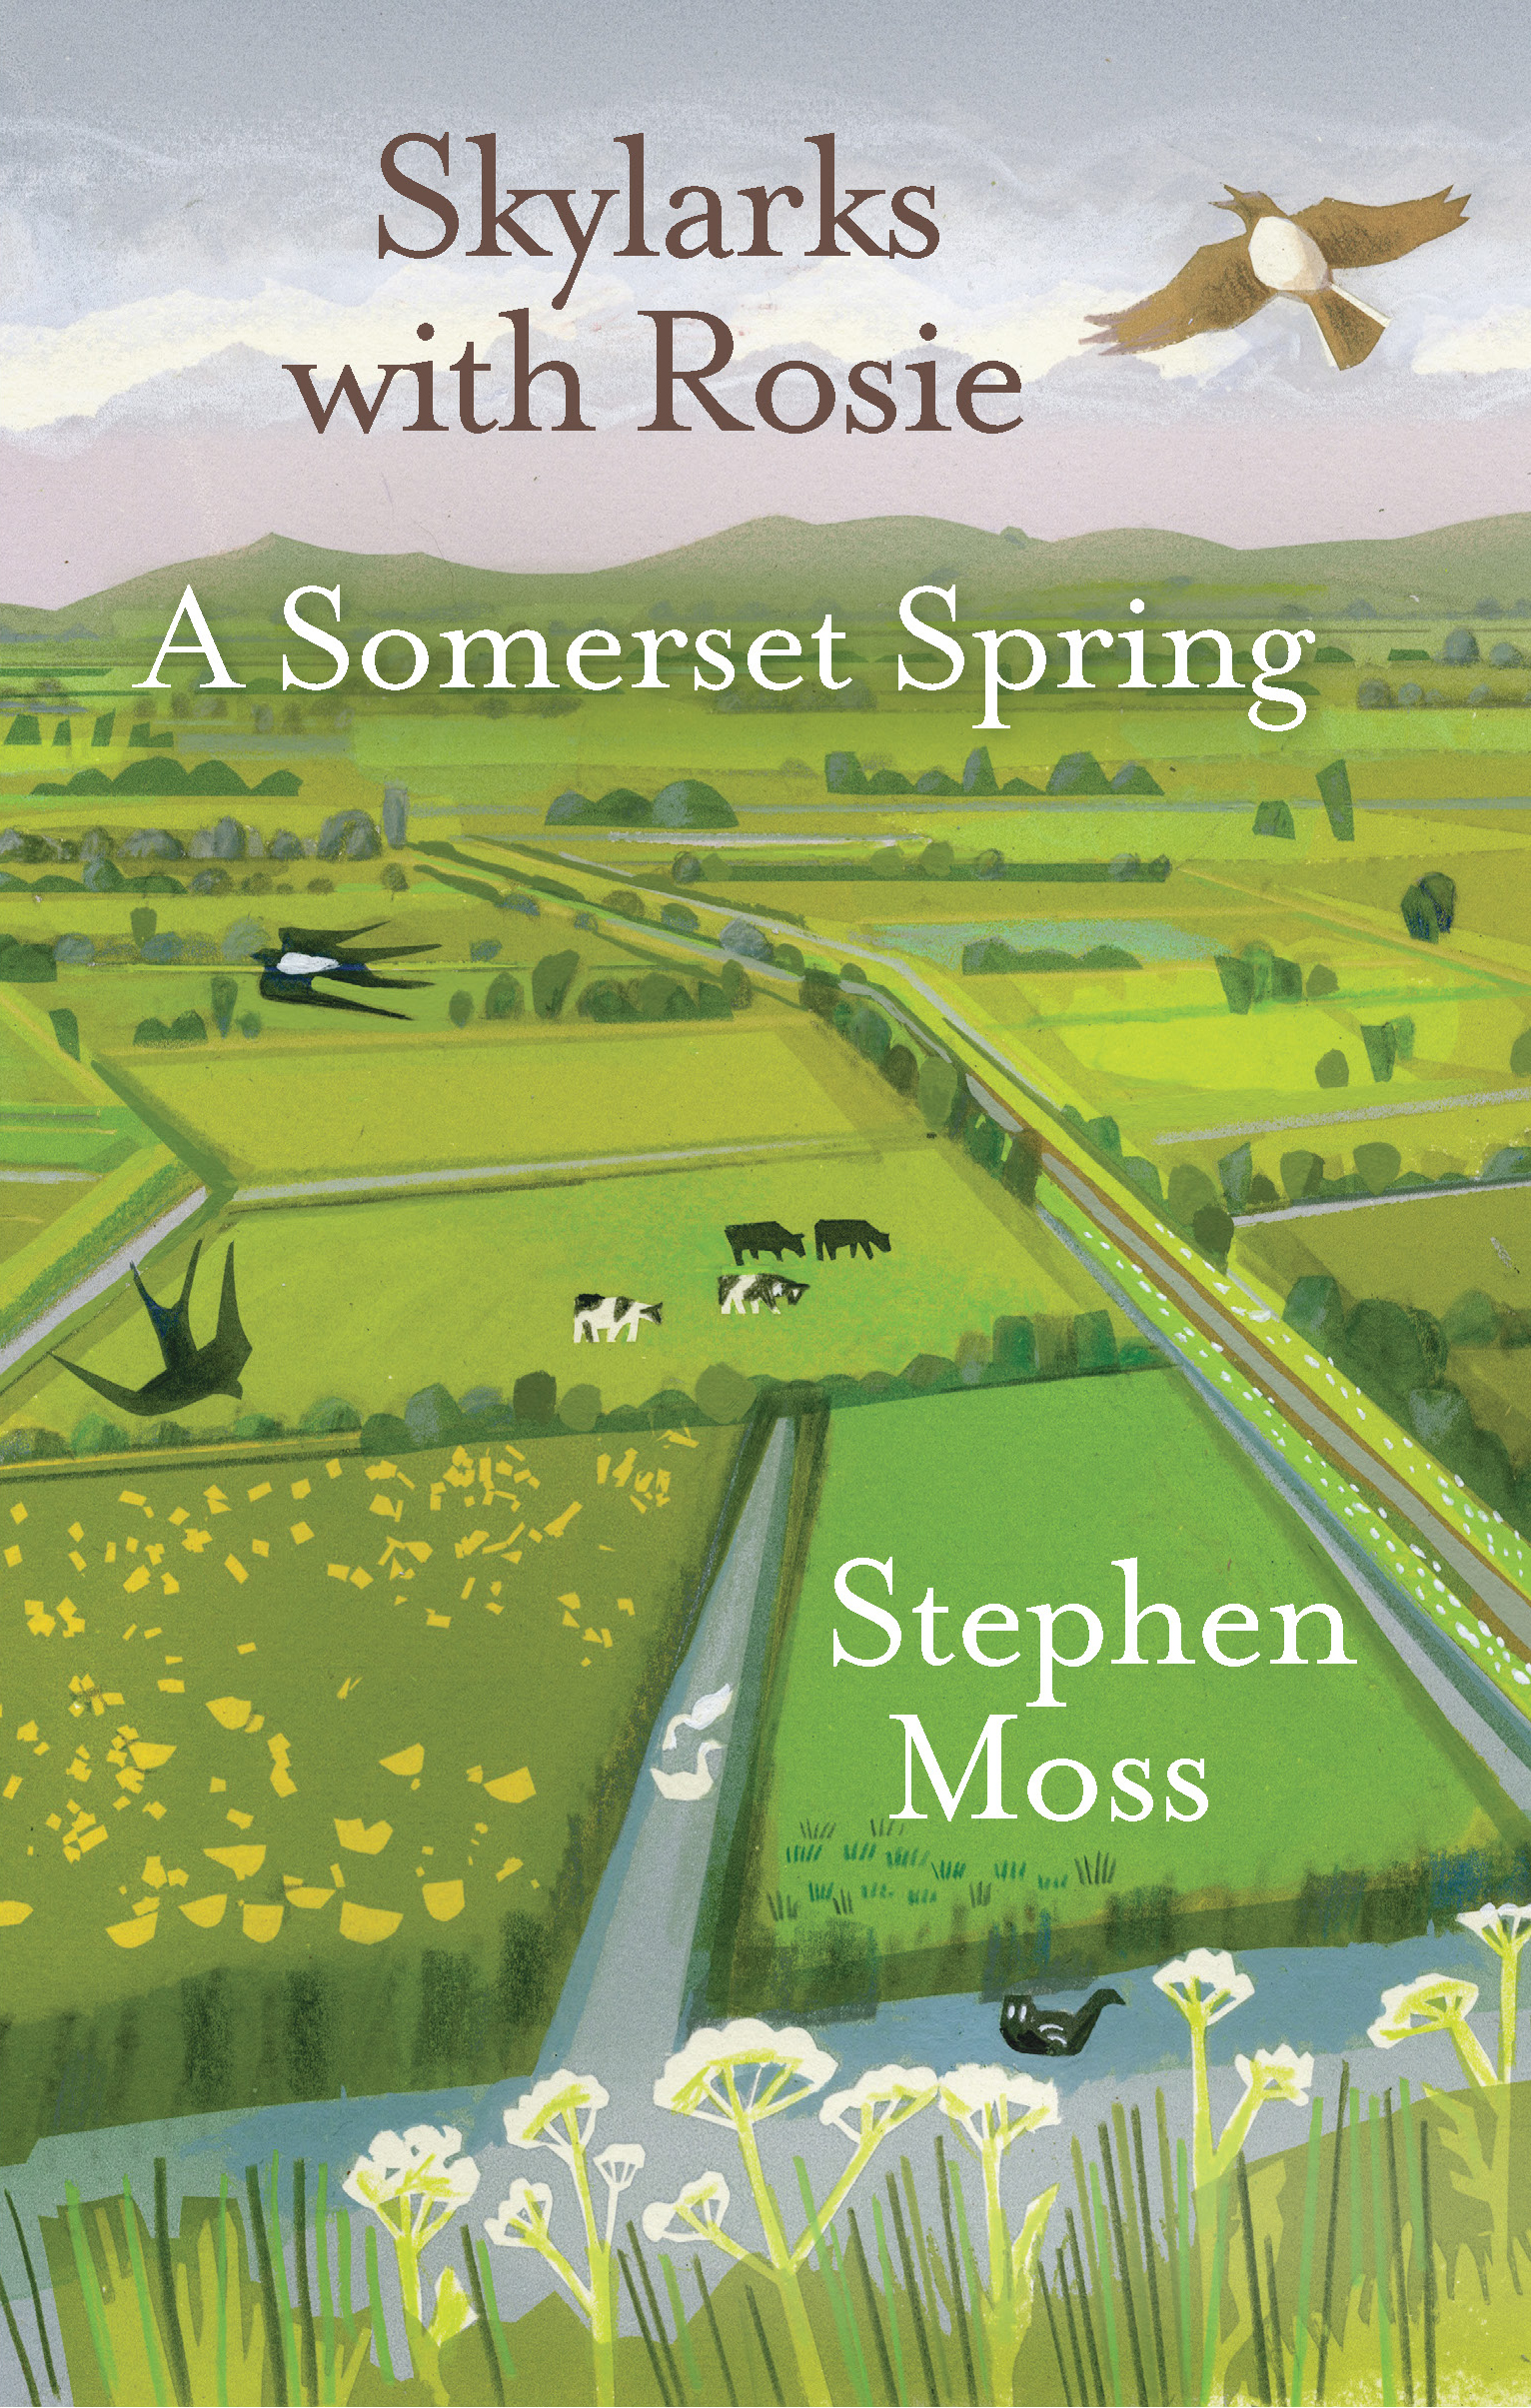 Skylarks with Rosie: A Somerset Spring